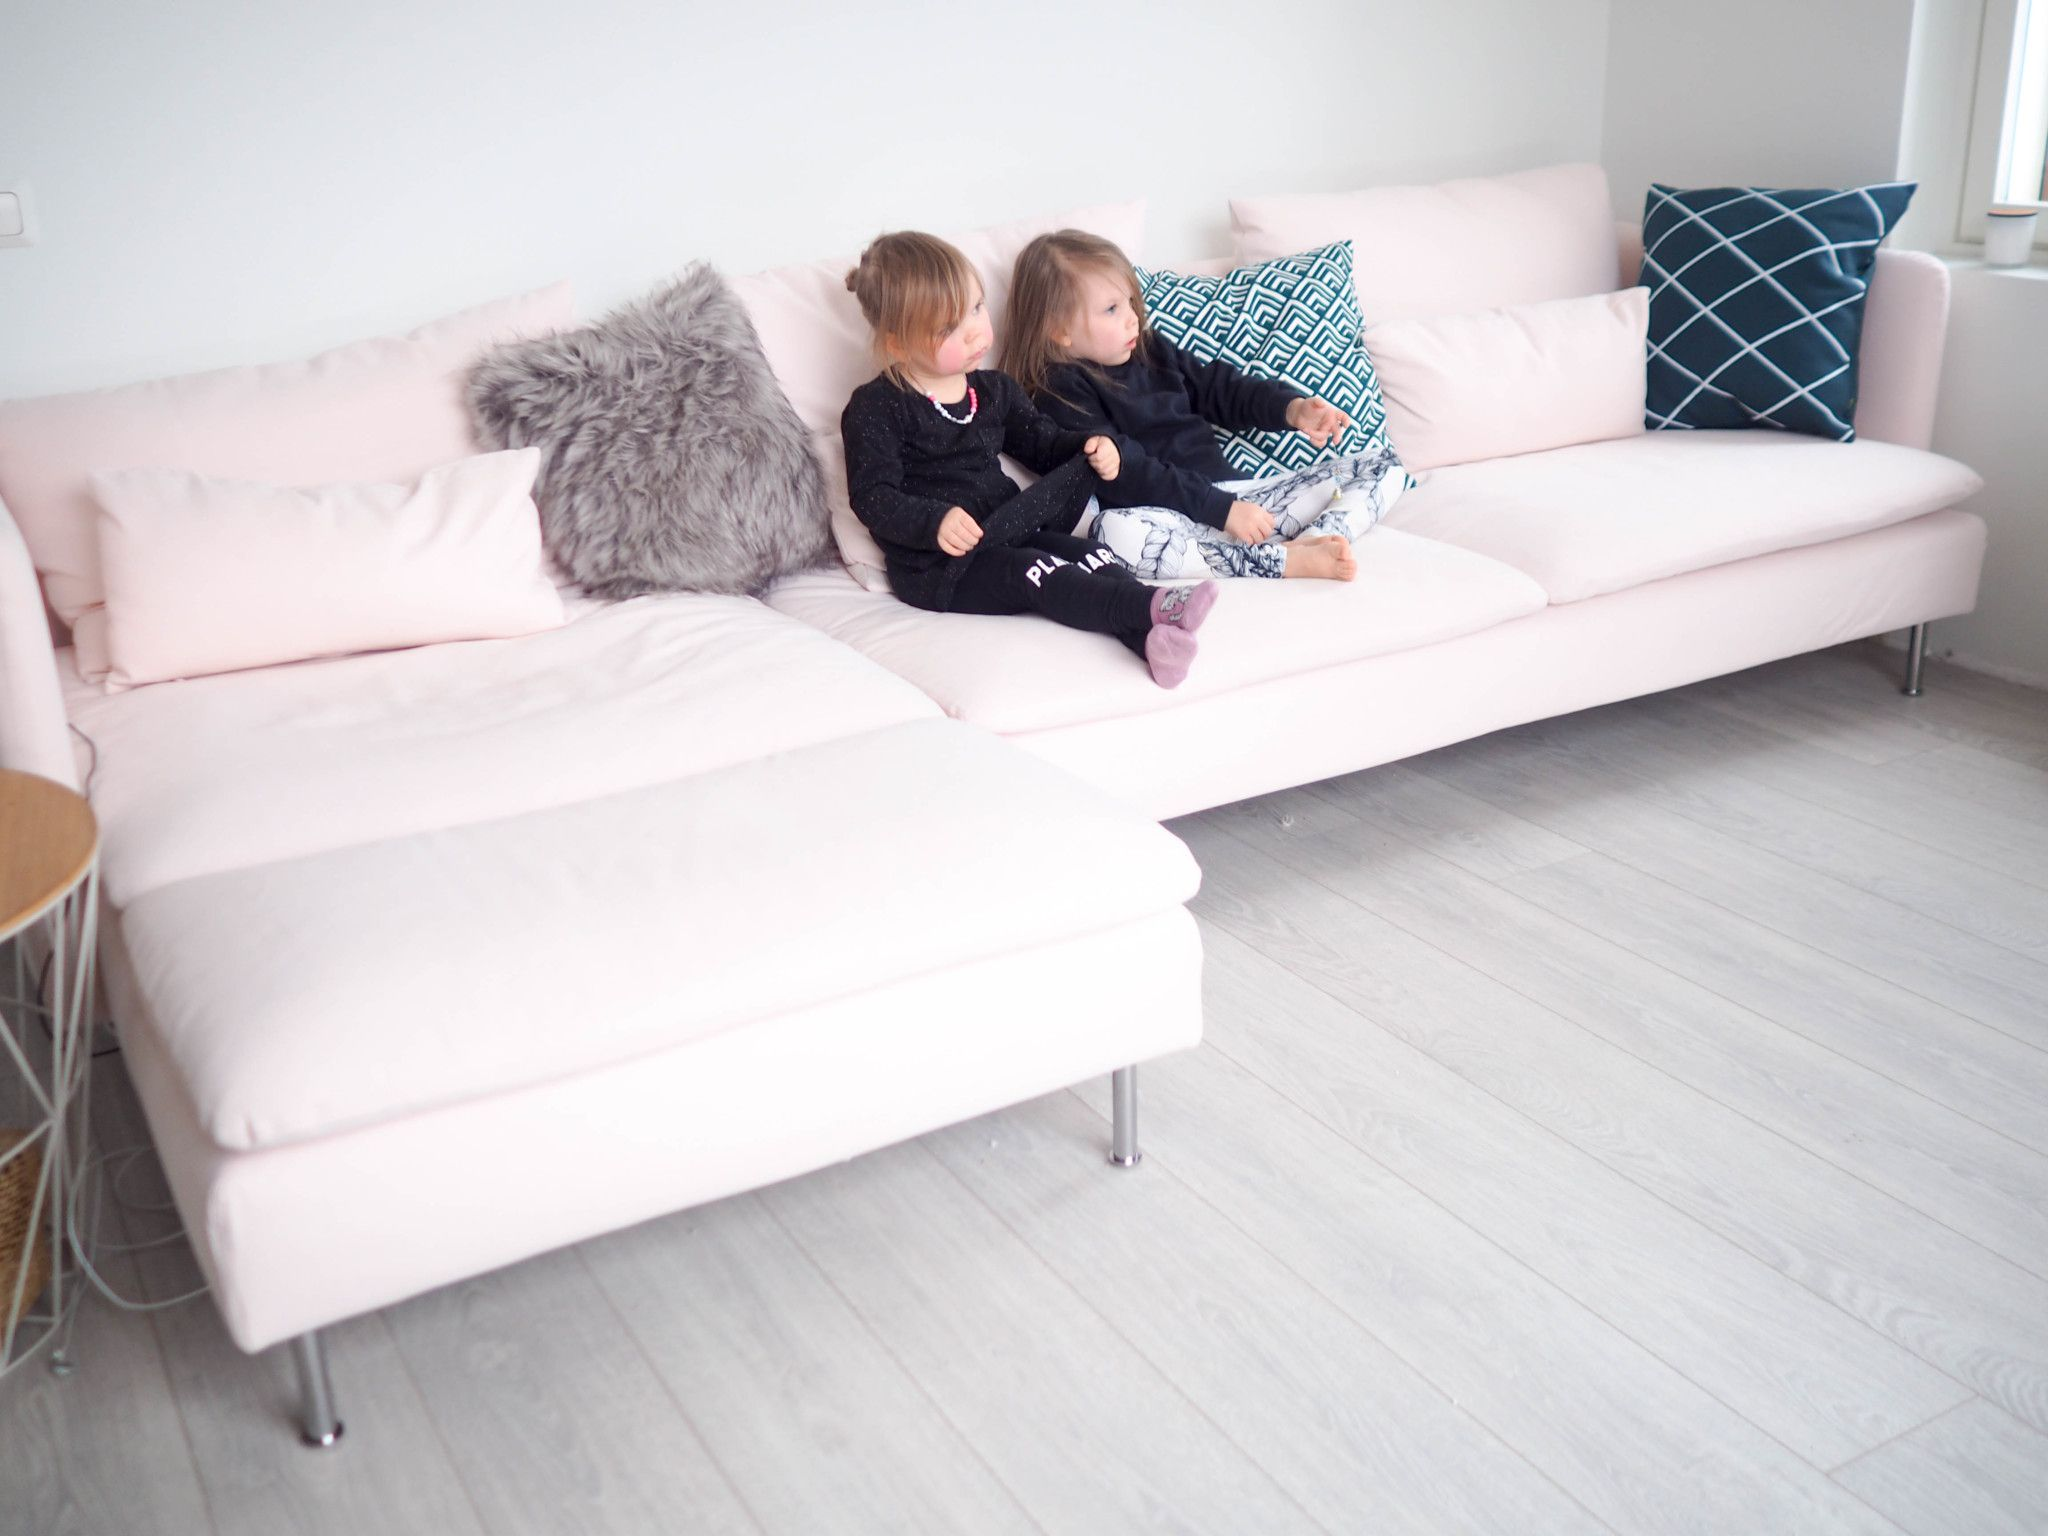 Soderhamn Samsta Pink Ikea Sofa Ikea Sofa Bed Sofas For Small Spaces Ikea Living Room